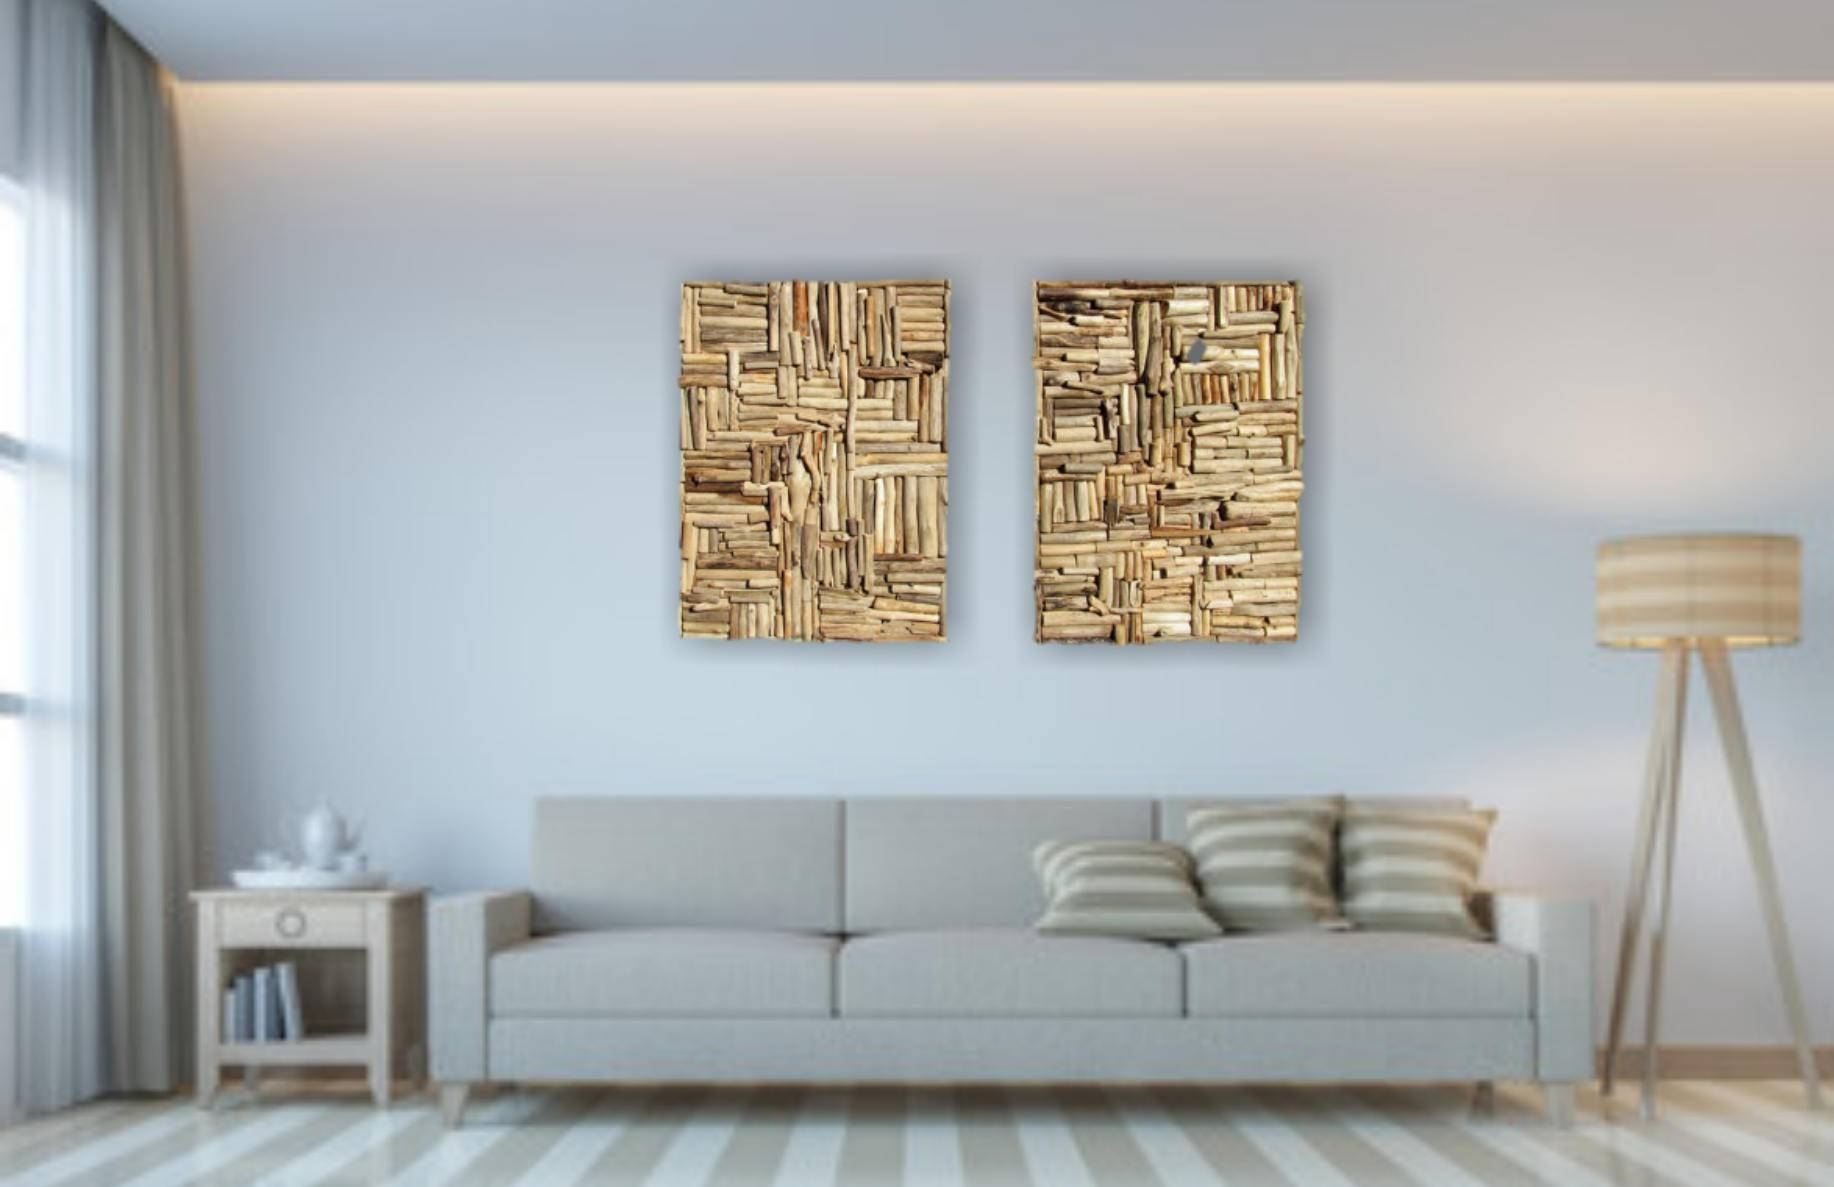 Large Mosaic Driftwood Wall Art Beach Home Decor Coastal Inside Most Recently Released Large Driftwood Wall Art (View 18 of 30)